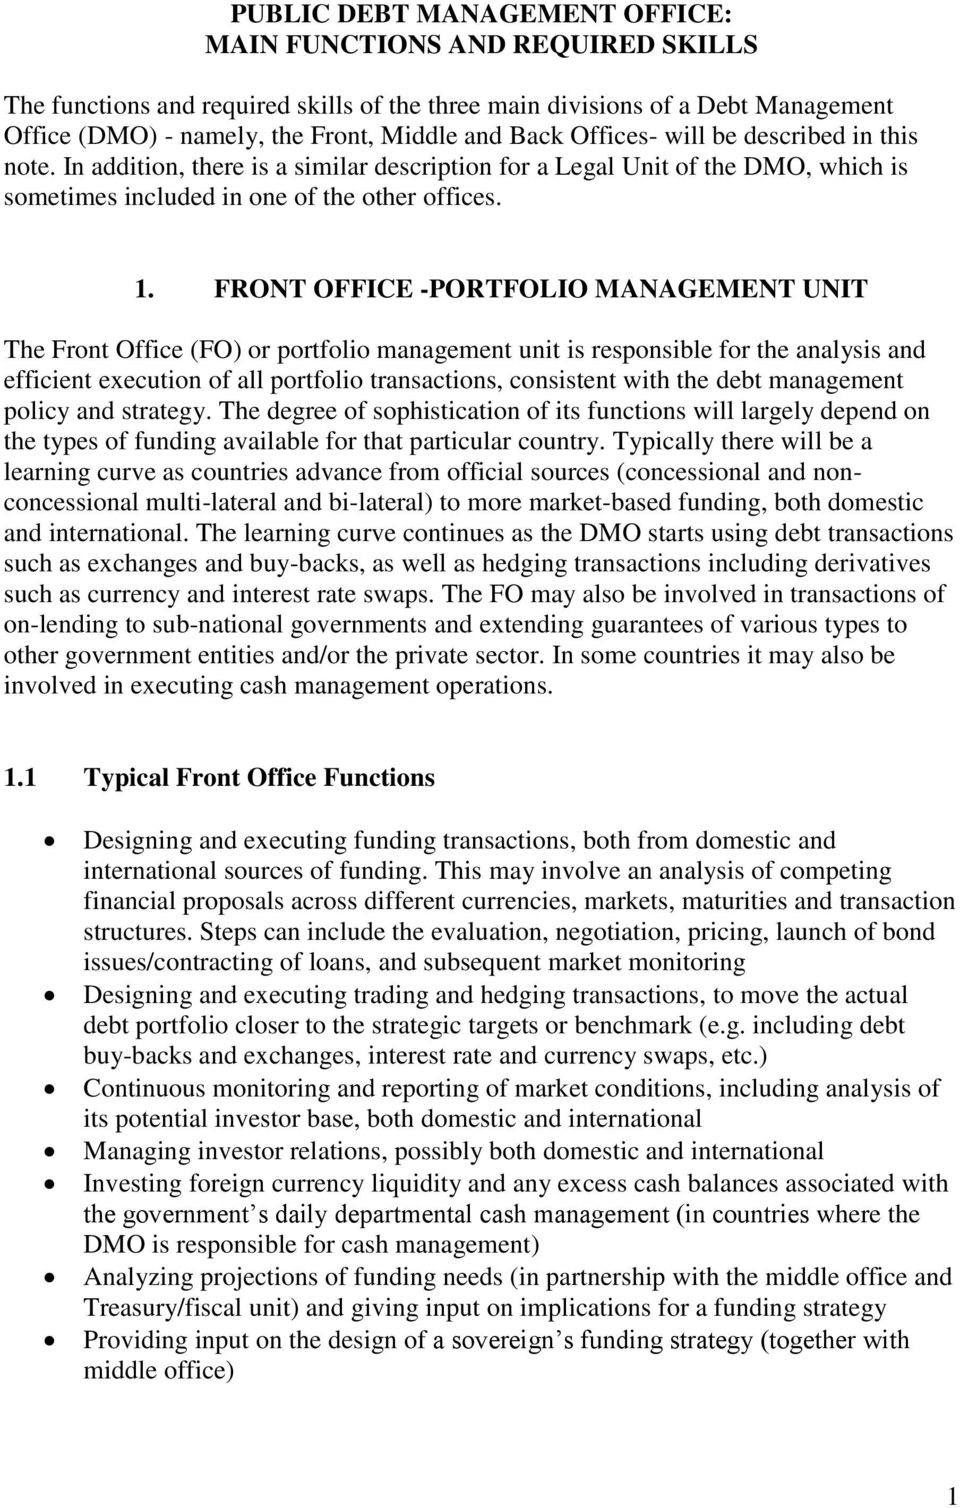 FRONT OFFICE -PORTFOLIO MANAGEMENT UNIT The Front Office (FO) or portfolio management unit is responsible for the analysis and efficient execution of all portfolio transactions, consistent with the